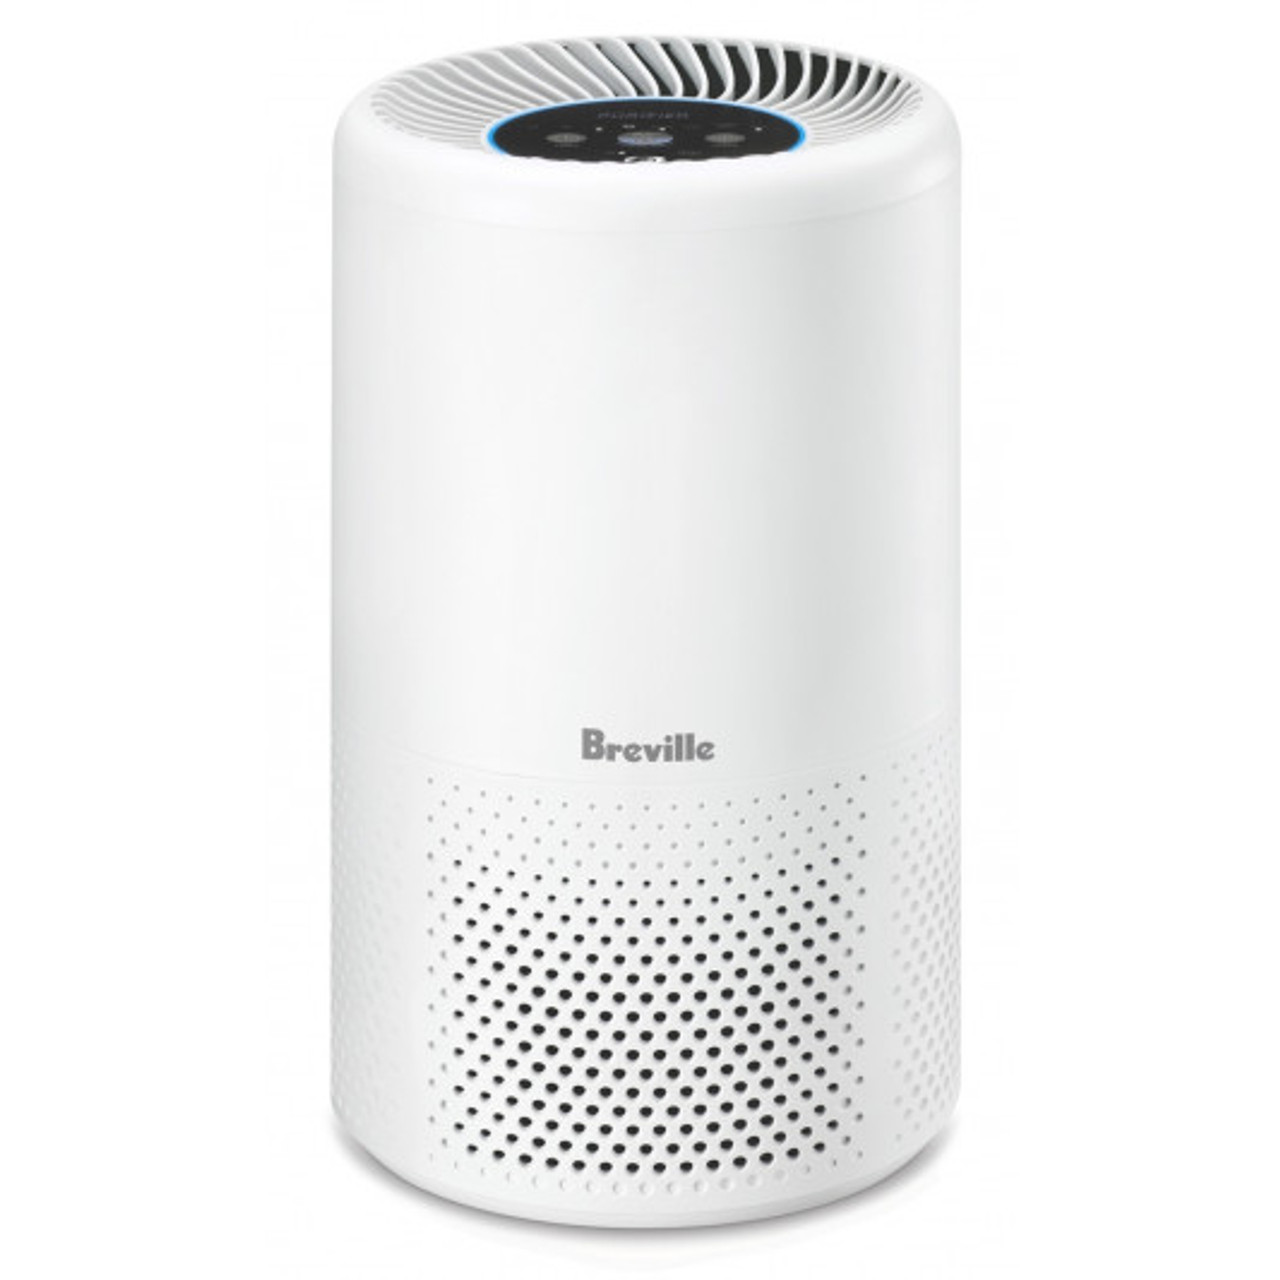 Breville LAP158WHT the Easy Air™ Purifier for Rooms up to 25m2